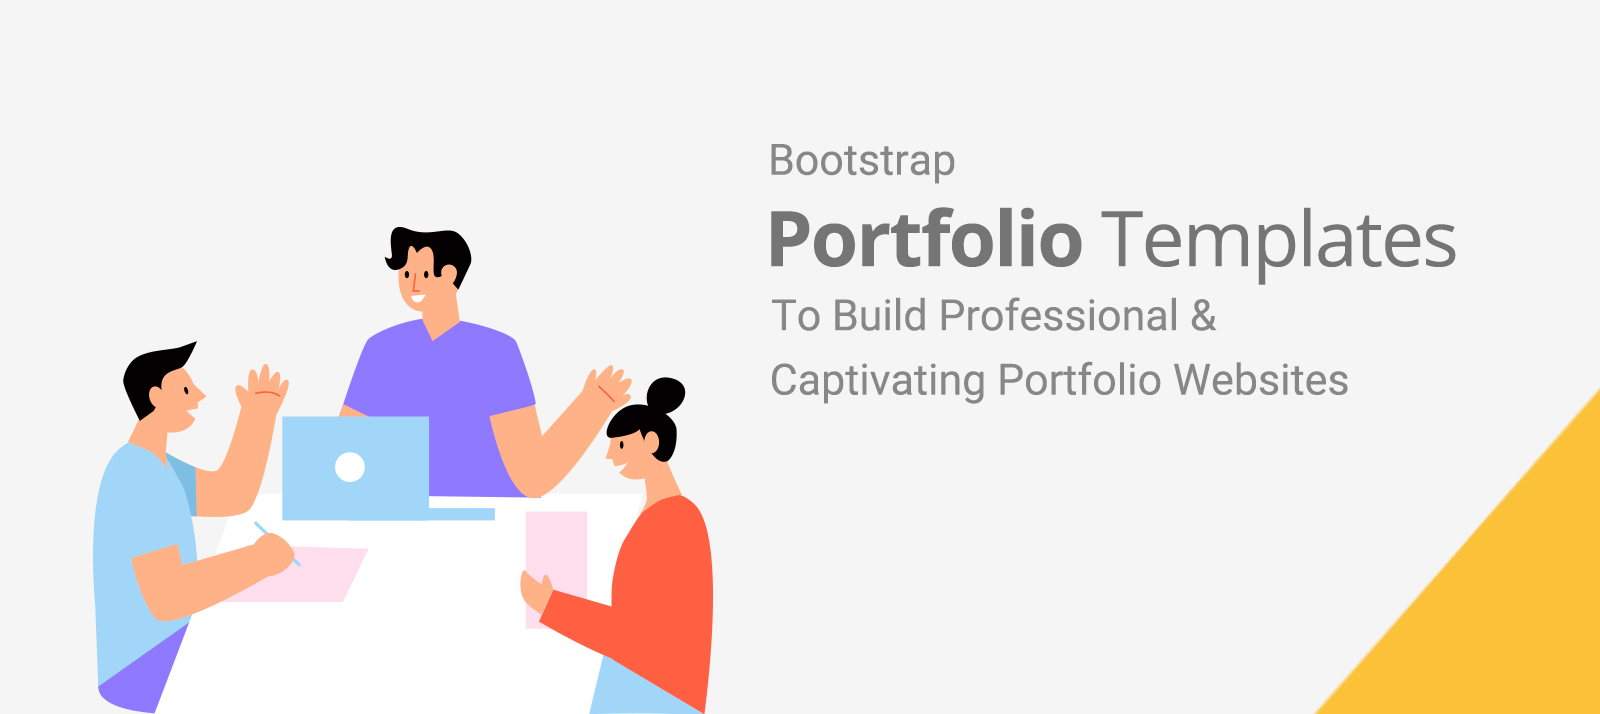 Bootstrap Portfolio Templates To Build Professional & Captivating Portfolio Websites